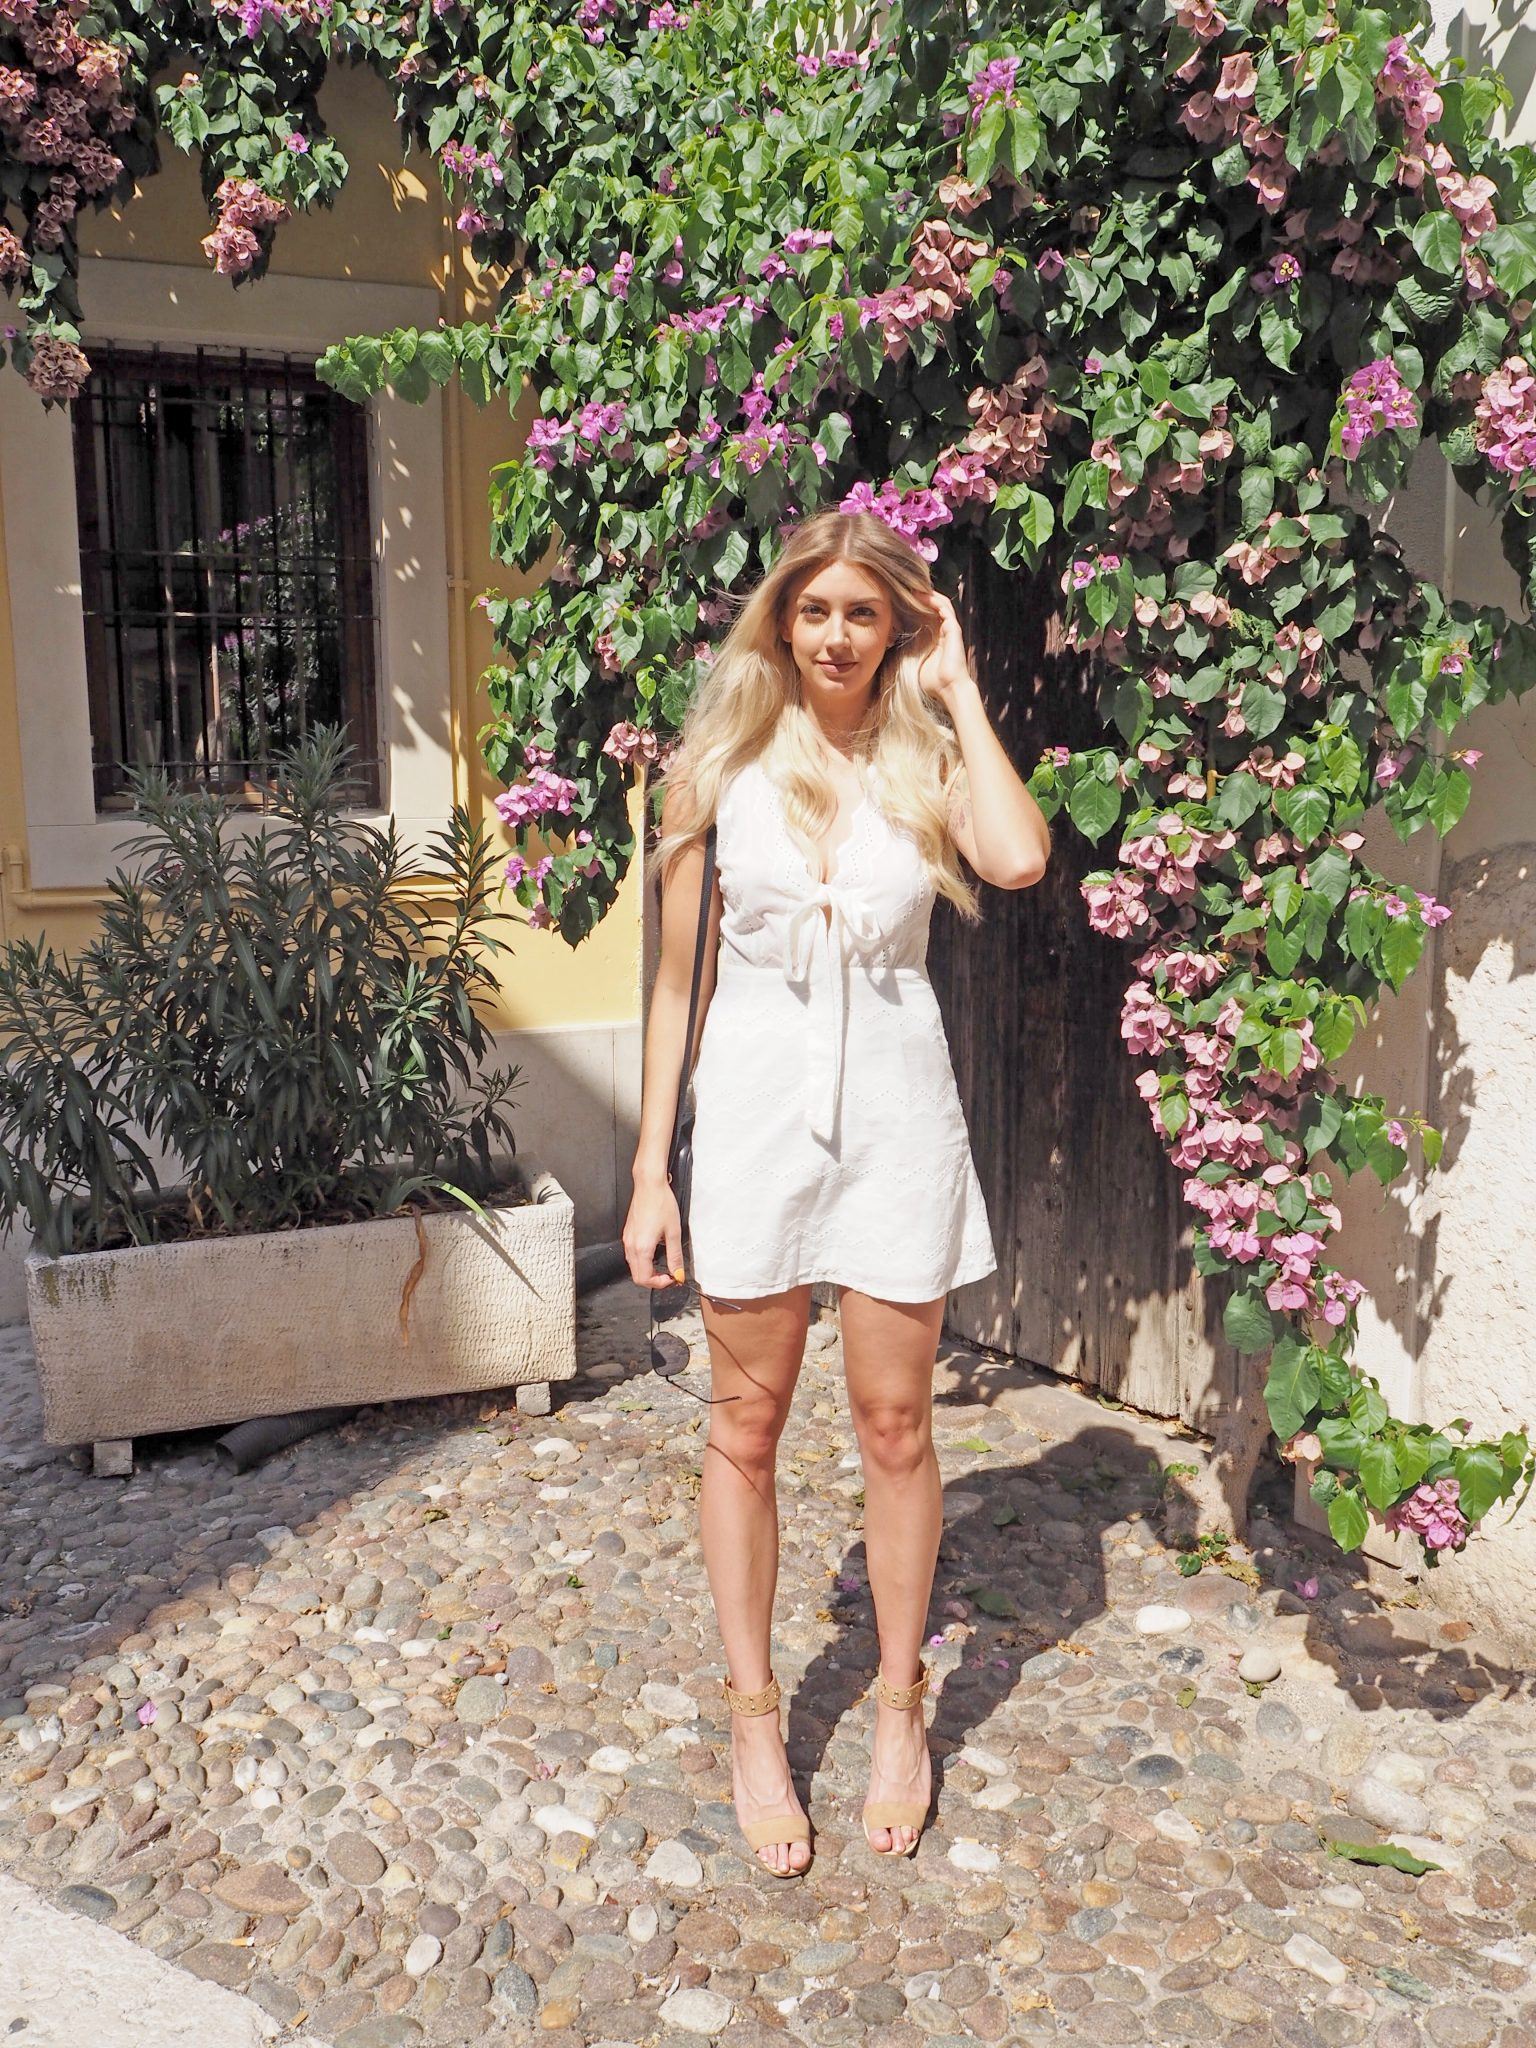 Laura Kate Lucas - Manchester Fashion, Travel and Lifestyle Blogger   Verona Italy Outfit Travel Dress